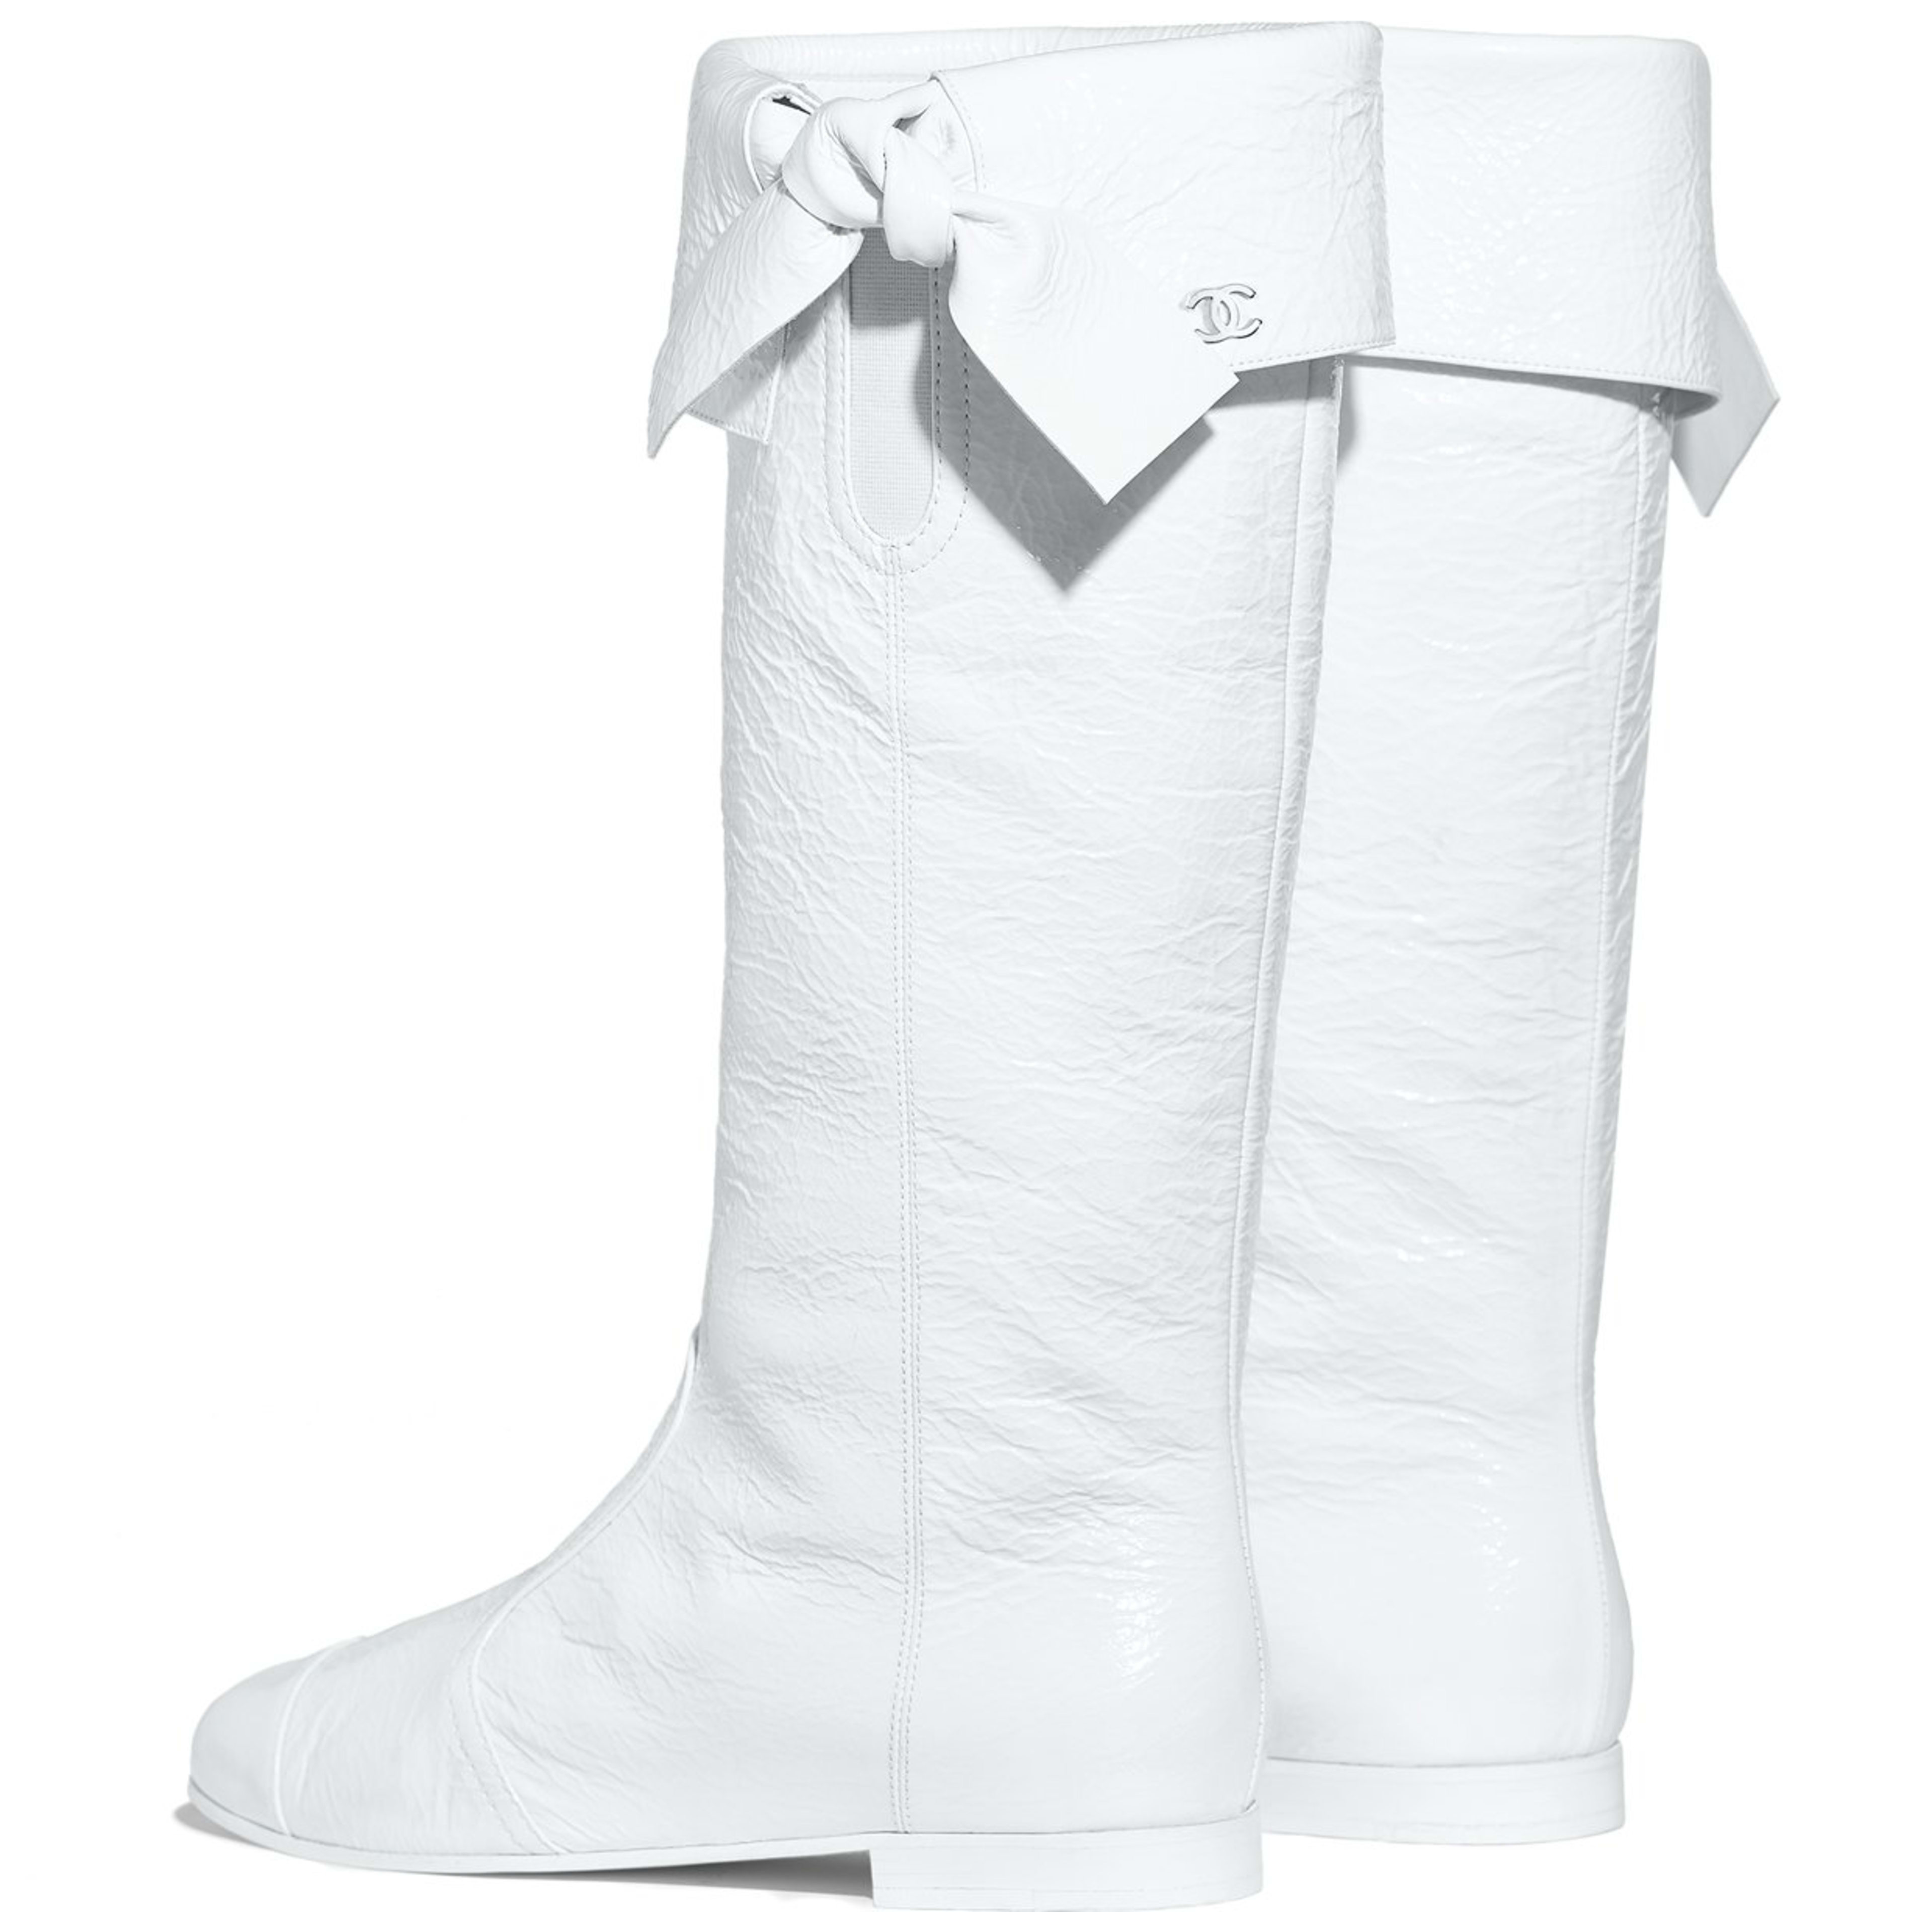 High Boots - White - Crumpled Lambskin - Other view - see full sized version